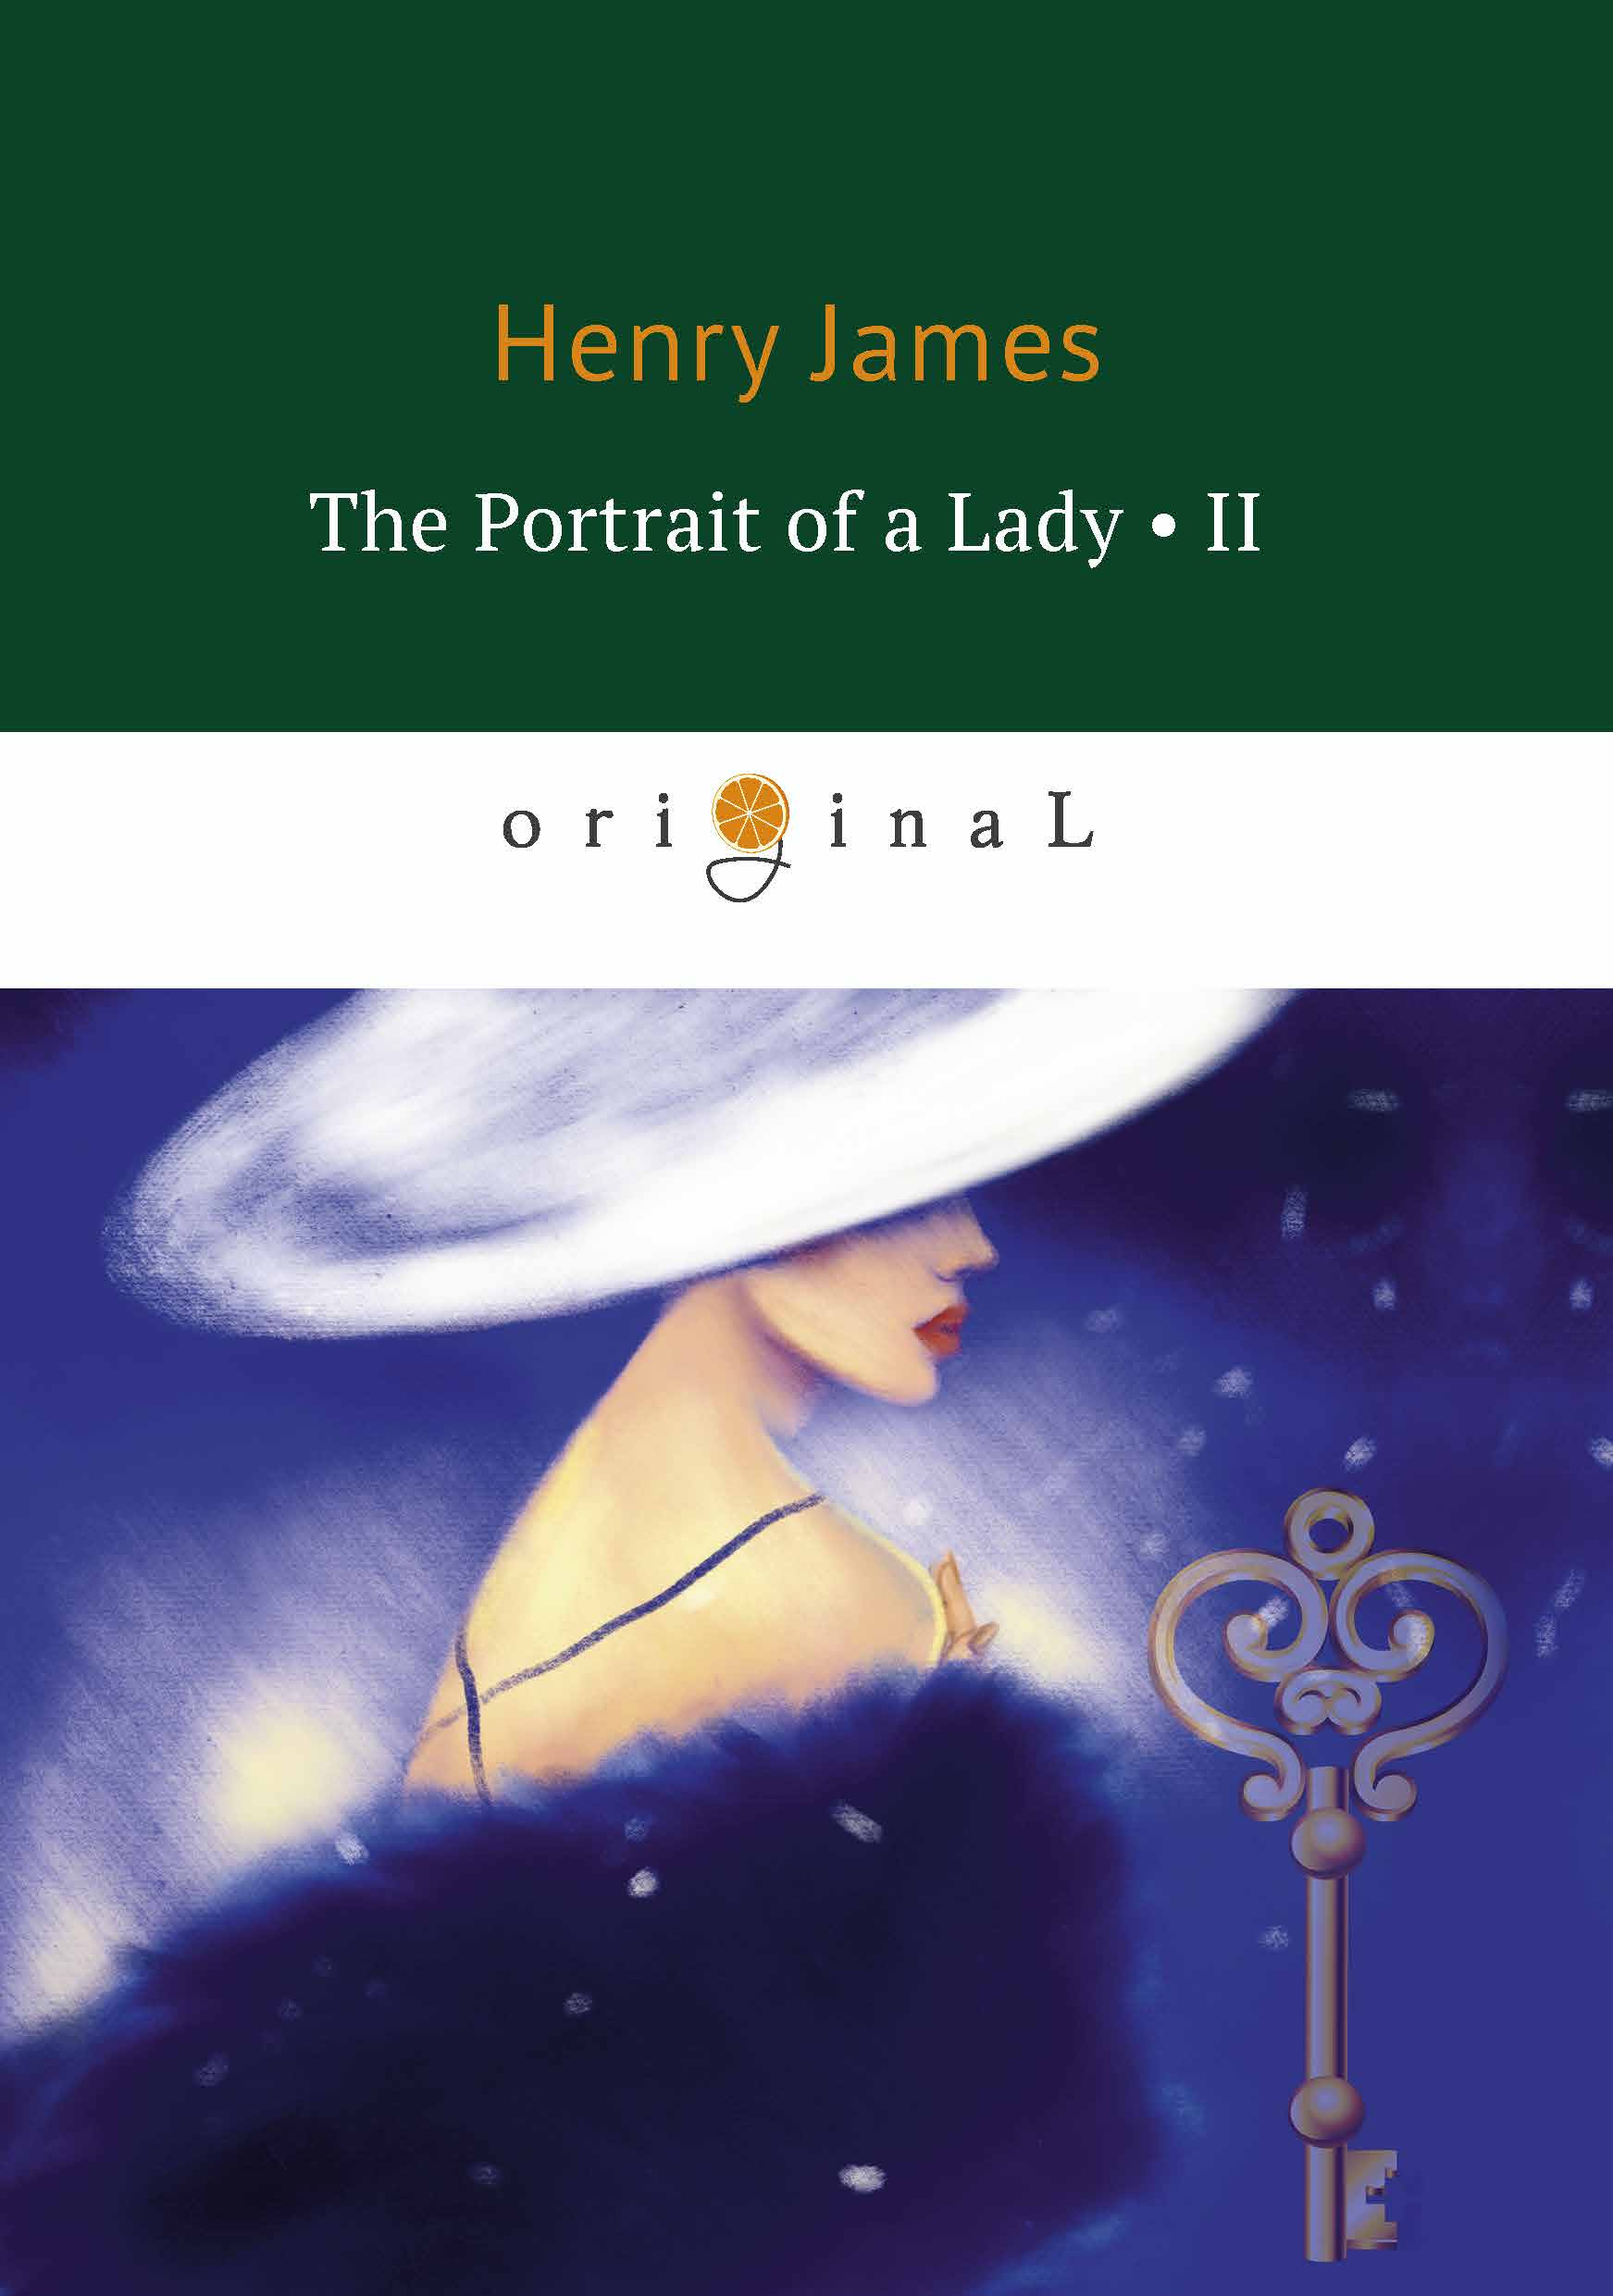 Henry James The Portrait of a Lady II goodwin harold leland the wailing octopus a rick brant science adventure story